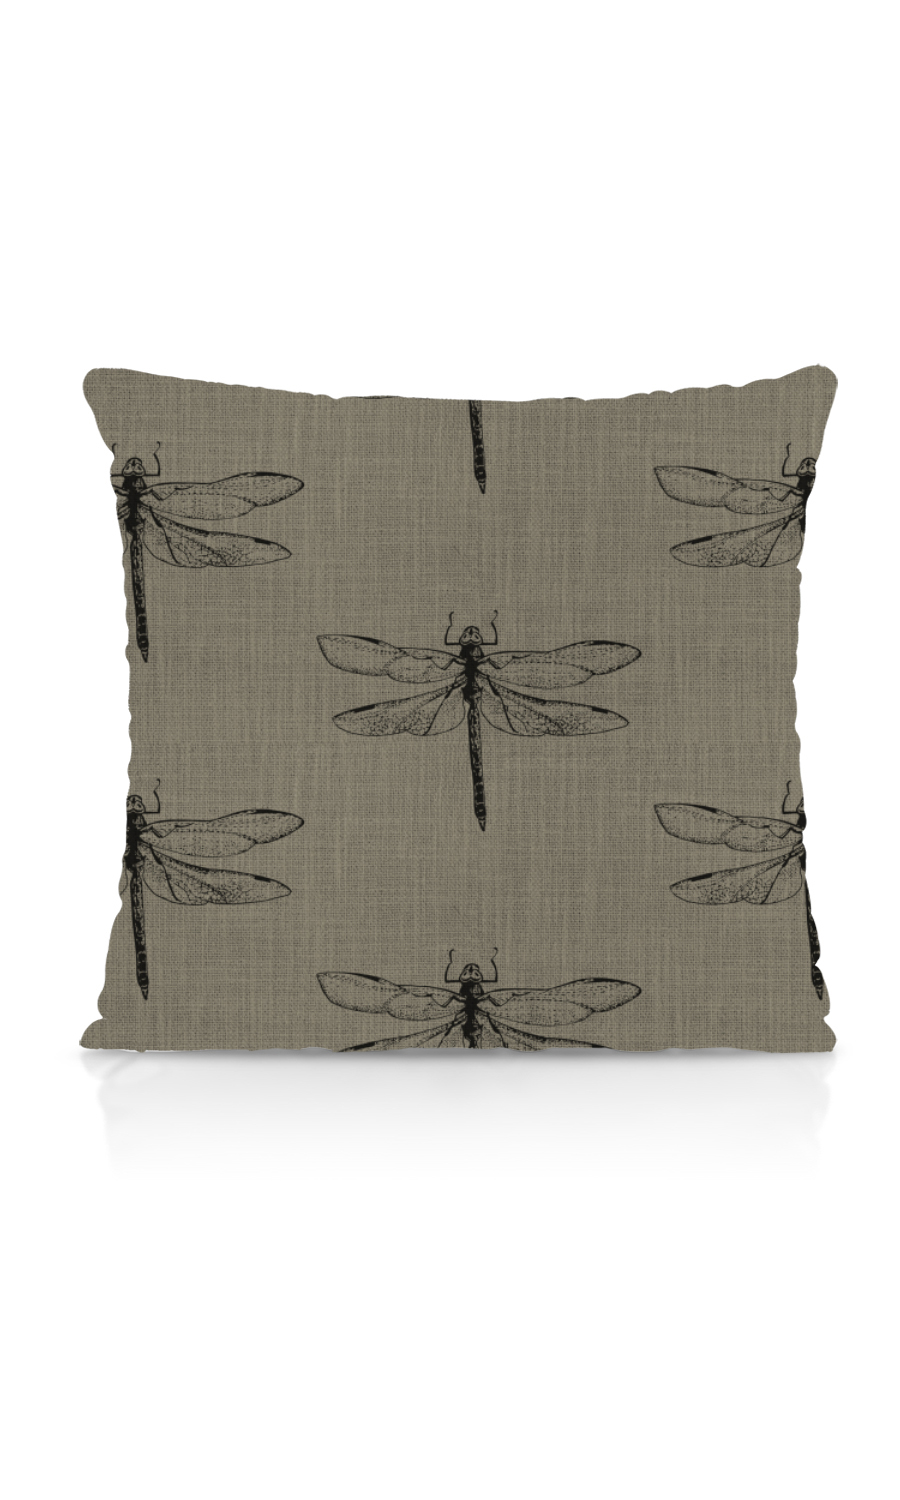 Printed Cushion For Bedrooms